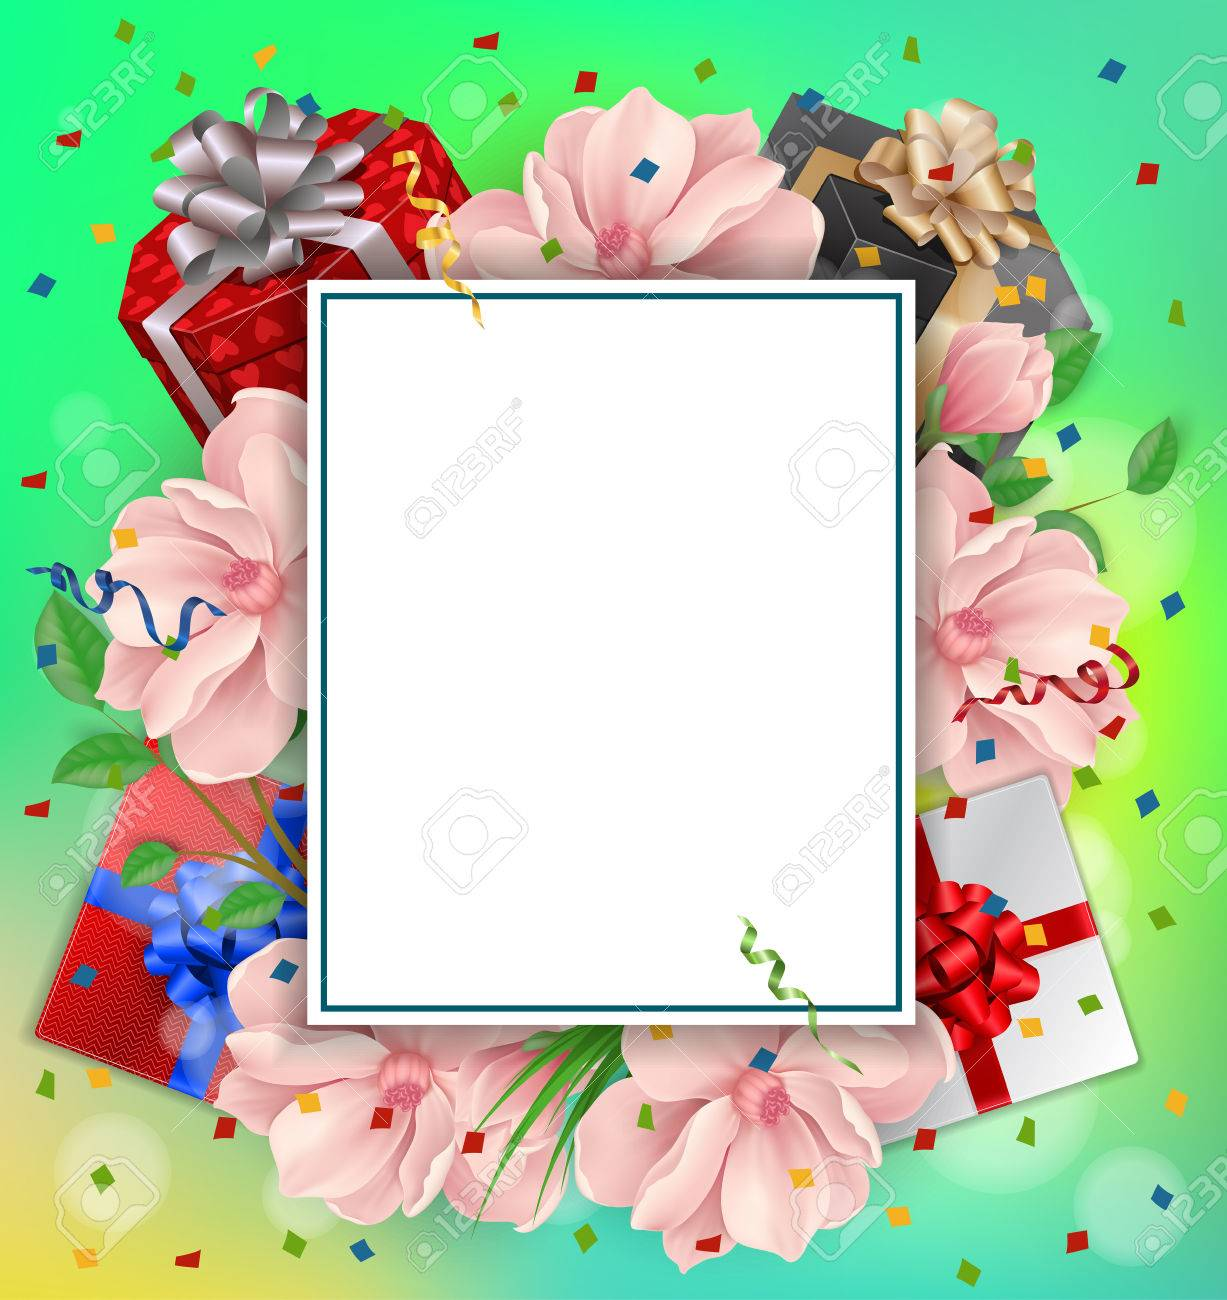 Blank greeting card with paper sheet gifts and flowers for blank greeting card with paper sheet gifts and flowers for greeting cards posters kristyandbryce Images